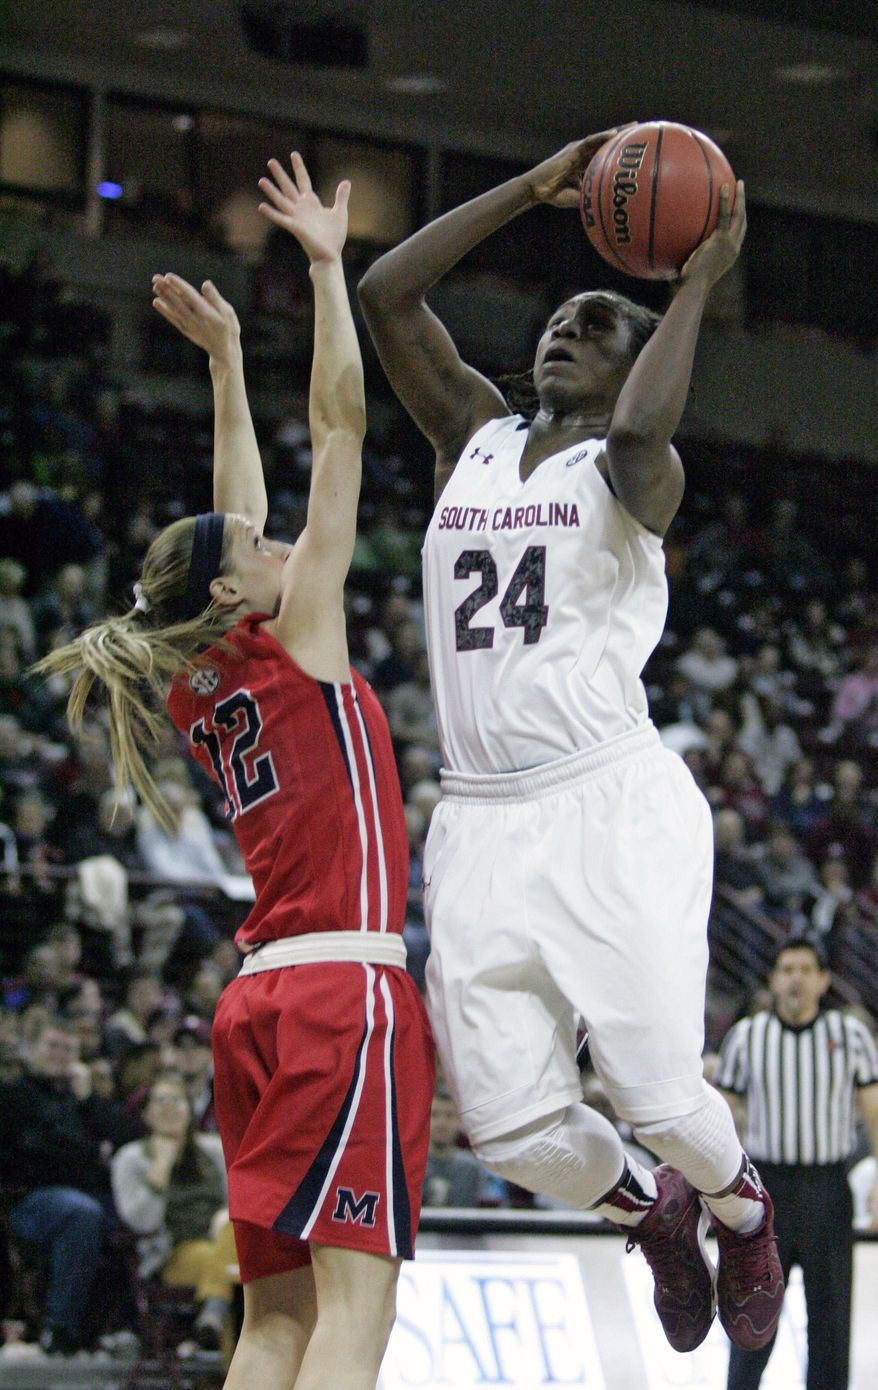 South Carolina's Aleighsa Welch (24) drives for the basket  as Ole Miss's Gracie Frizzell (12)  tries to block during the first half of an NCAA college basketball game Thursday, Jan. 30, 2014, in Columbia, S.C. (AP Photo/Mary Ann Chastain)